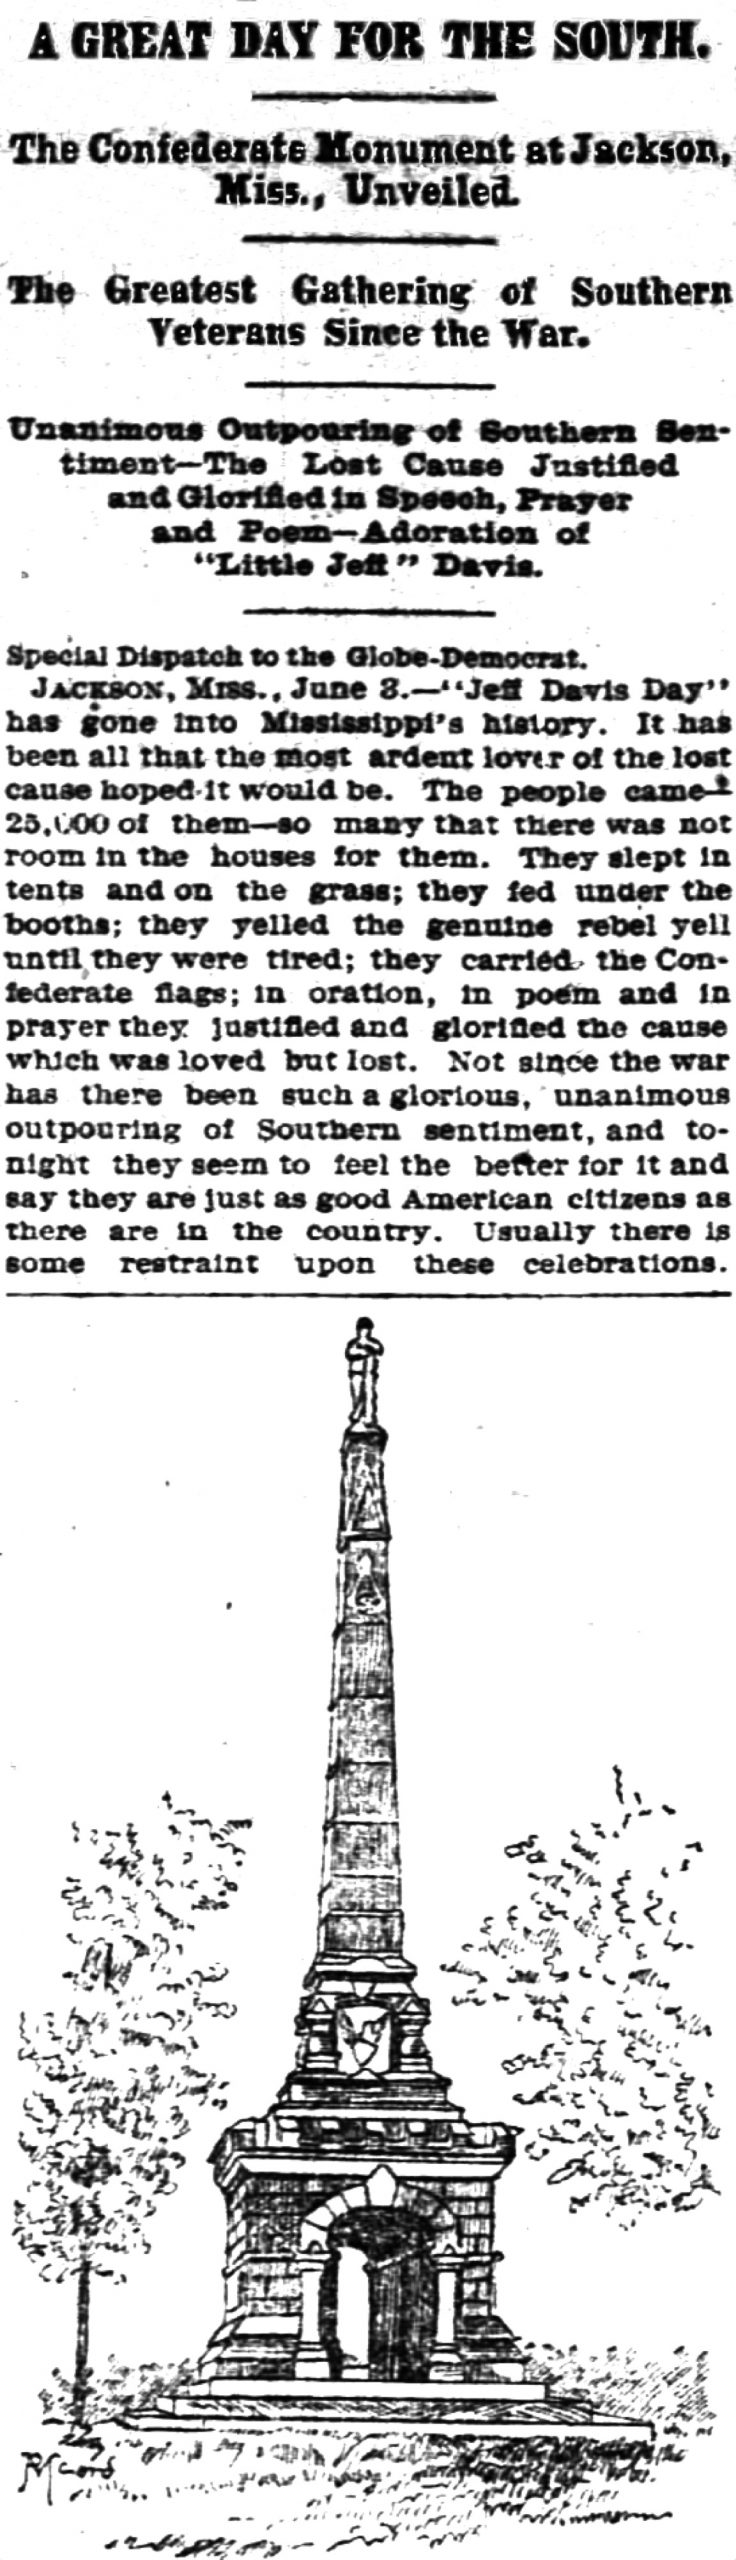 Newspaper clipping of the Lost Cause